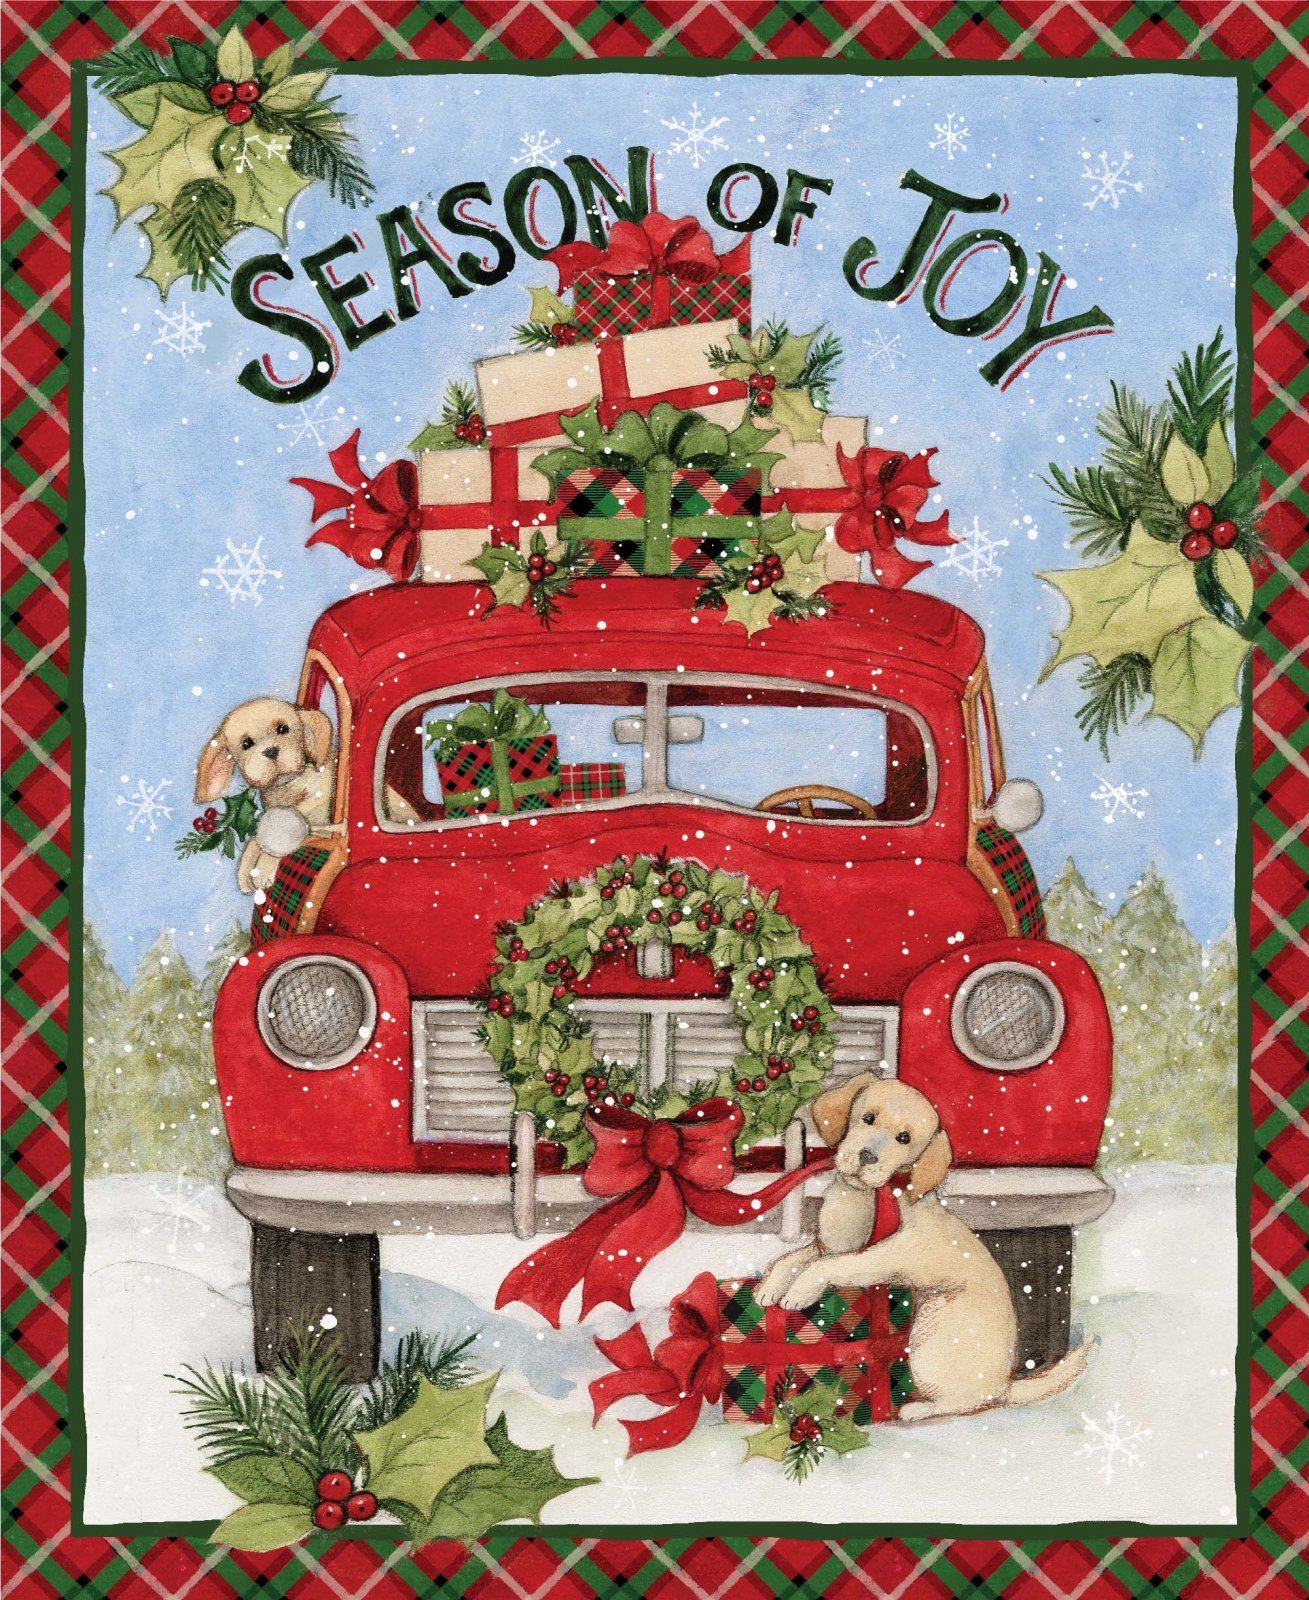 Spring Creative -Christmas Season of Joy Red Truck Panel